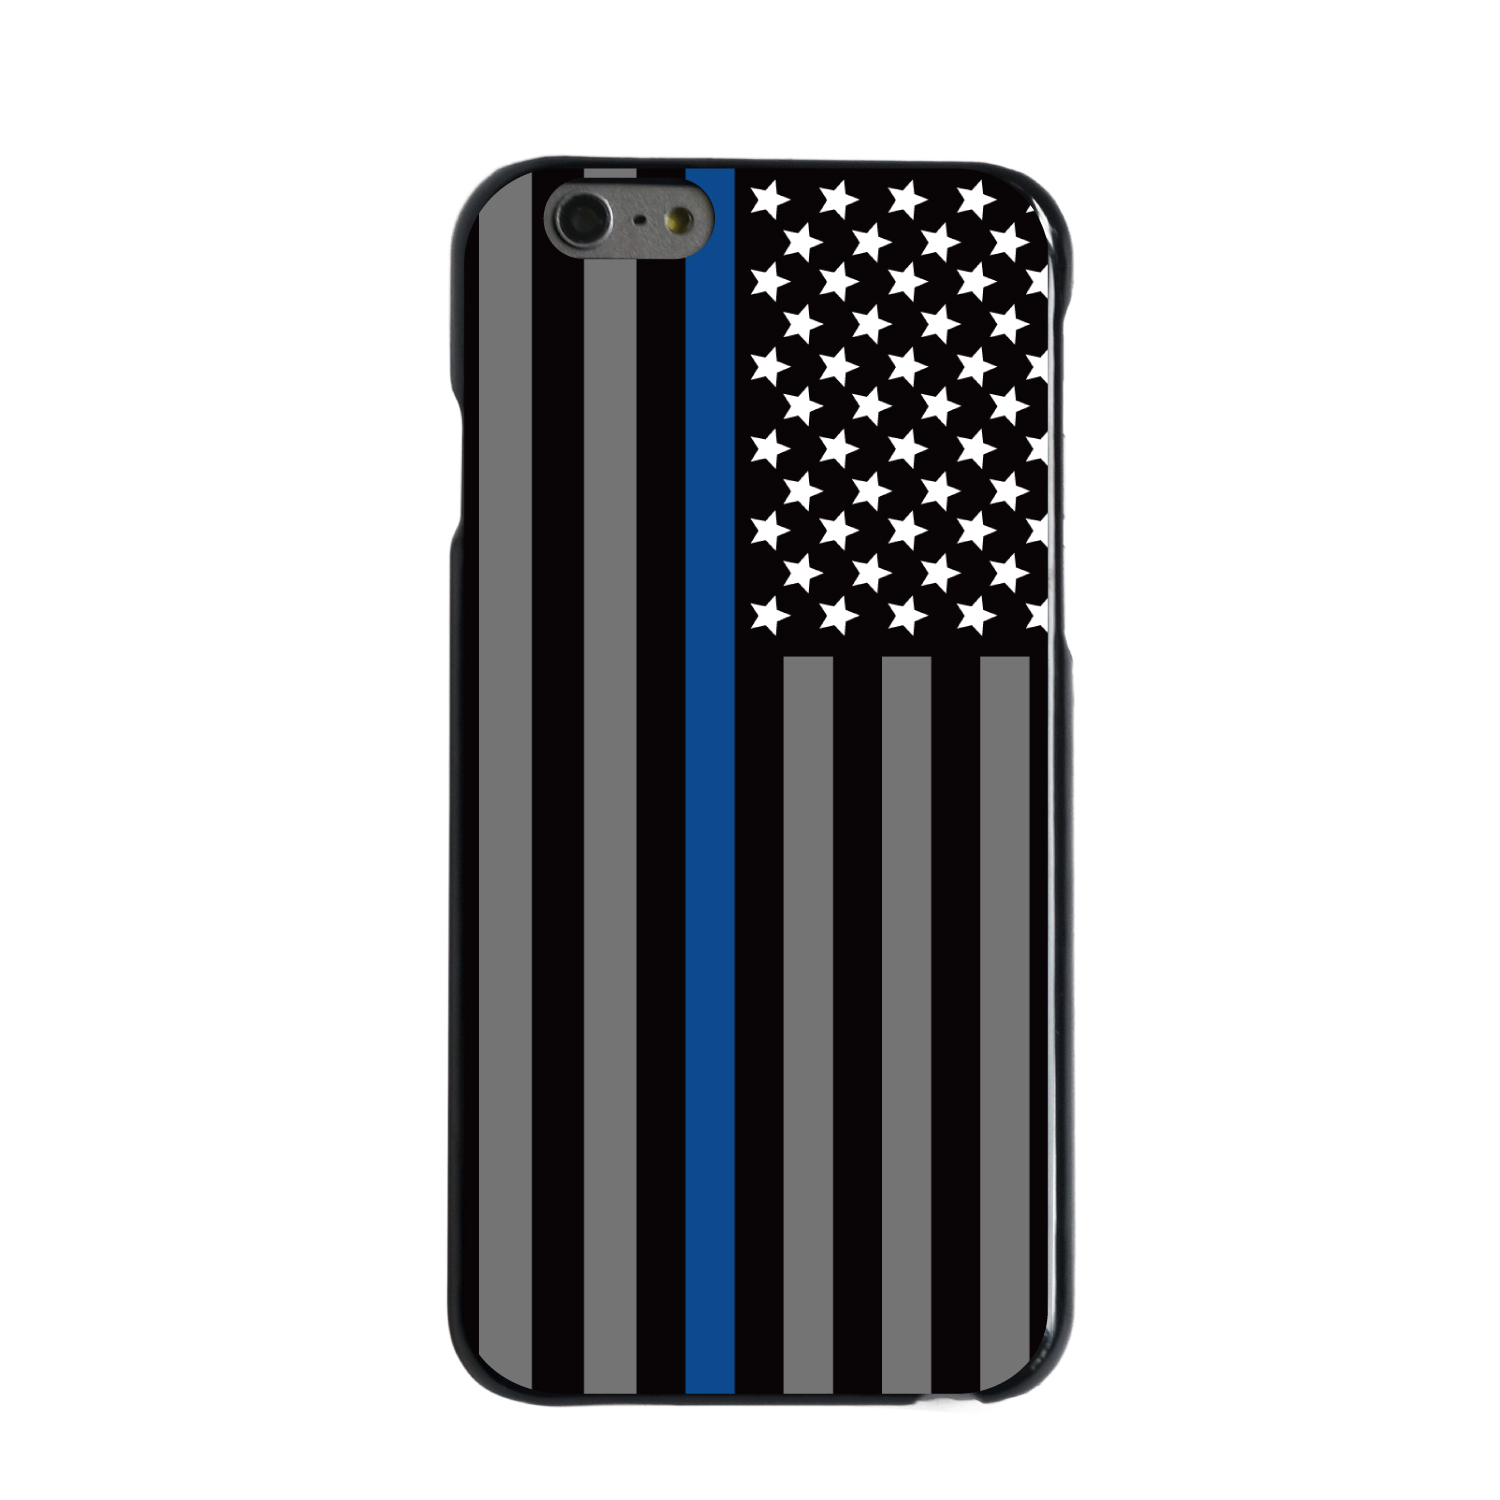 "CUSTOM Black Hard Plastic Snap-On Case for Apple iPhone 6 / 6S (4.7"" Screen) - Thin Blue Line US Flag Law Enforcement"